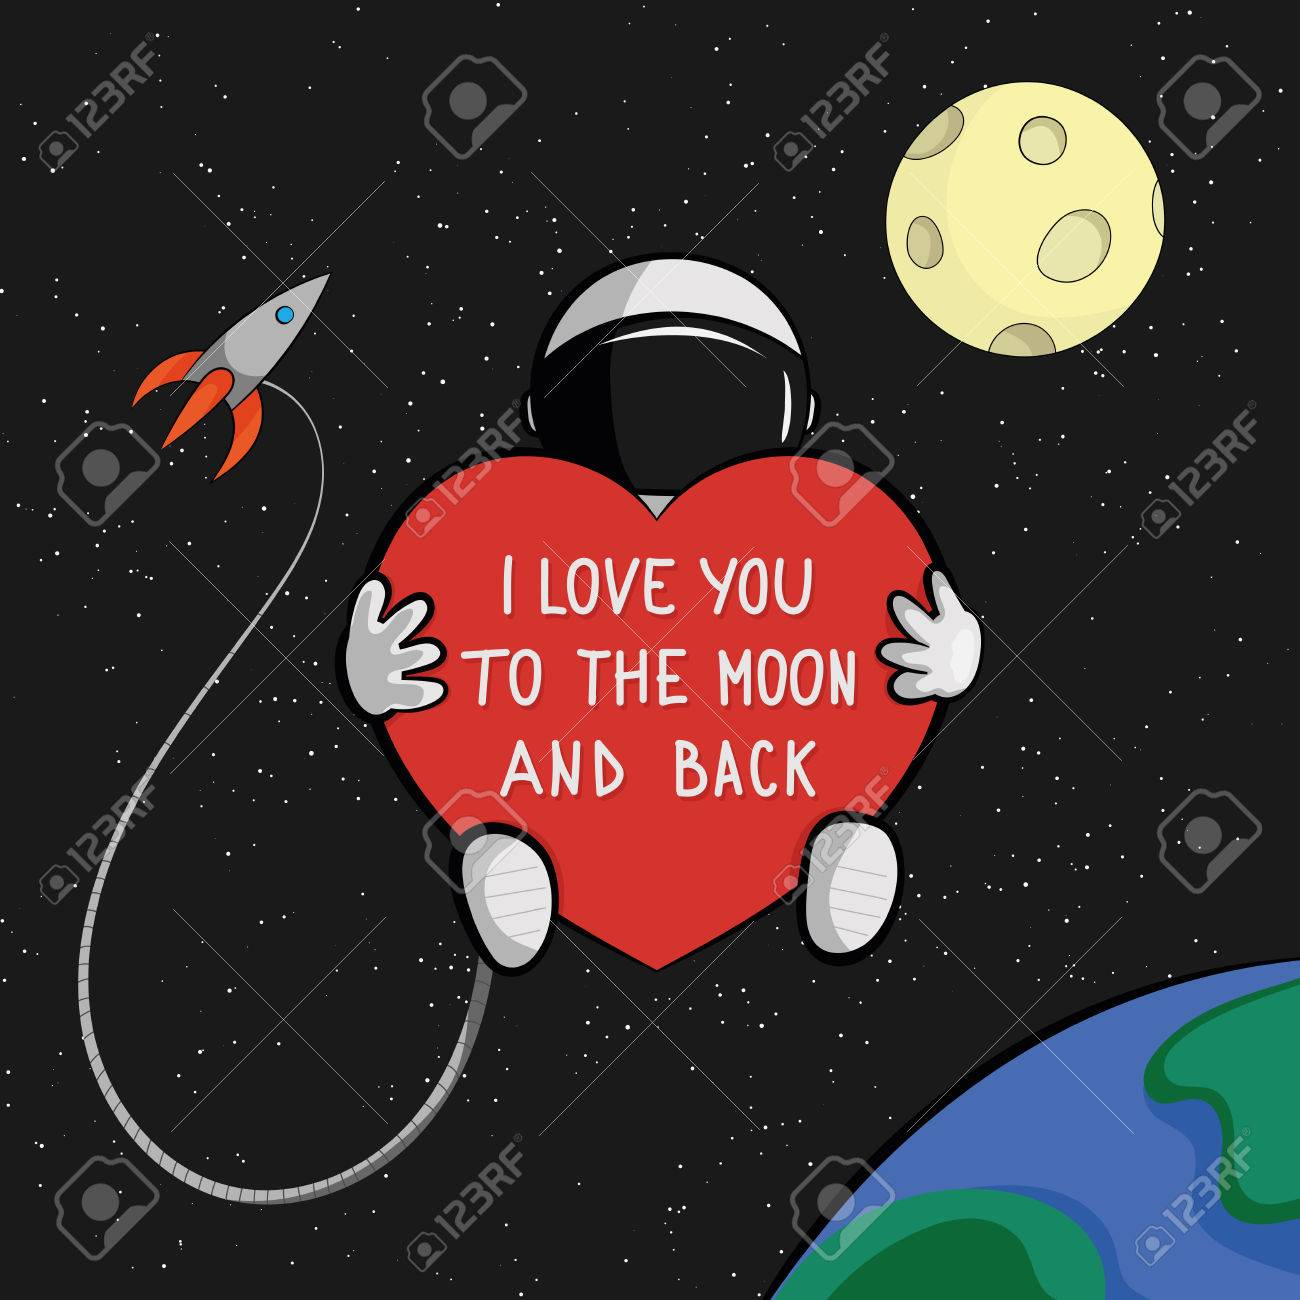 I Love You To The Moon And Back Quote Card Astronaut With Heart